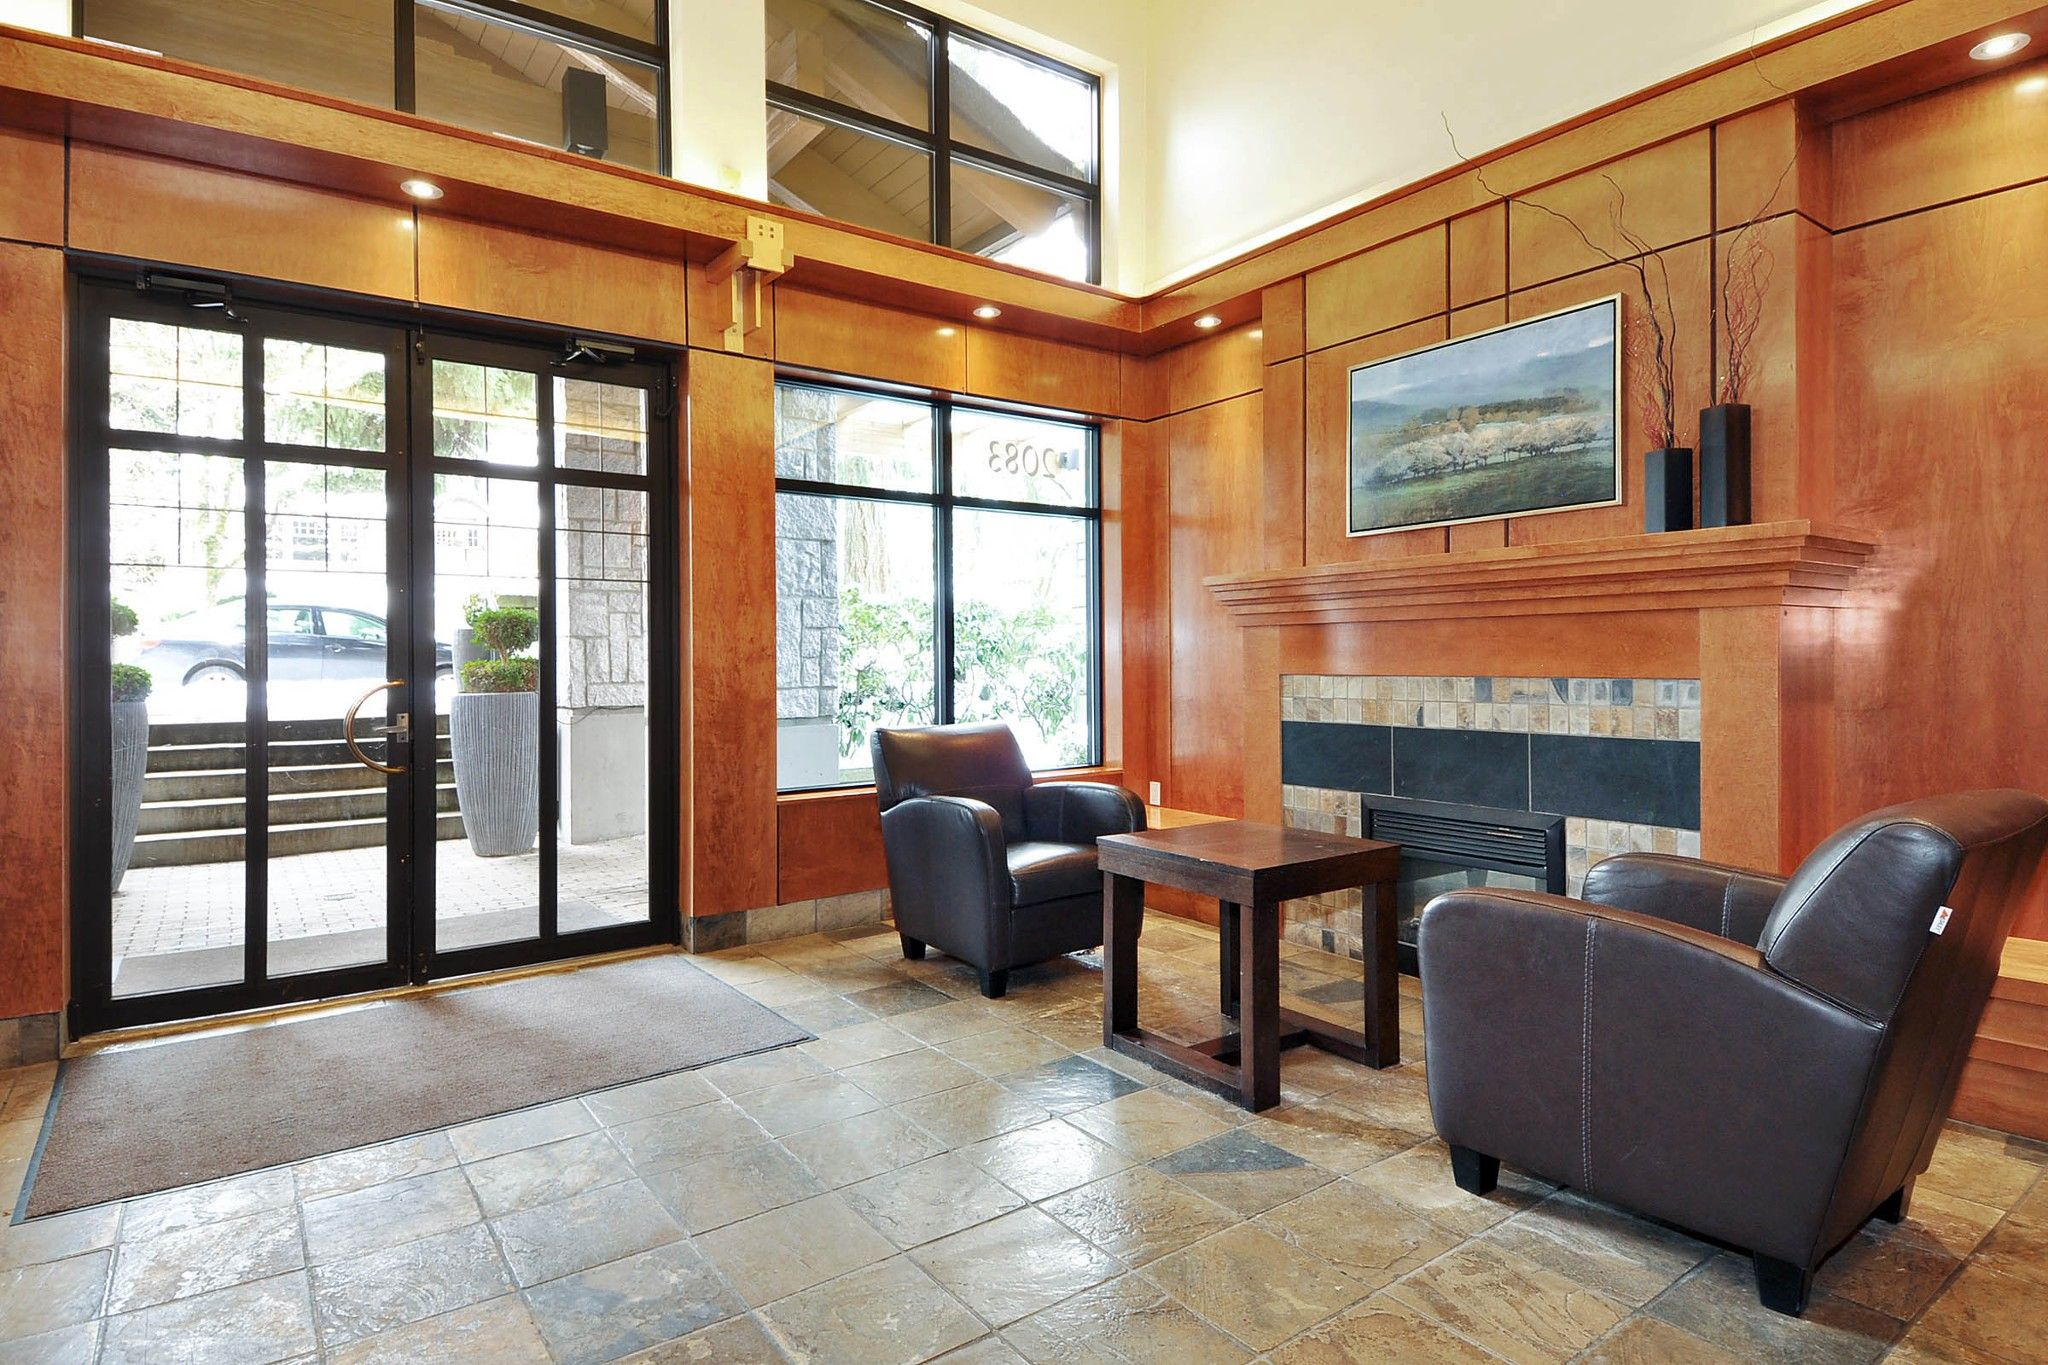 """Photo 13: Photos: 222 2083 W 33RD Avenue in Vancouver: Quilchena Condo for sale in """"DEVONSHIRE HOUSE"""" (Vancouver West)  : MLS®# R2341234"""